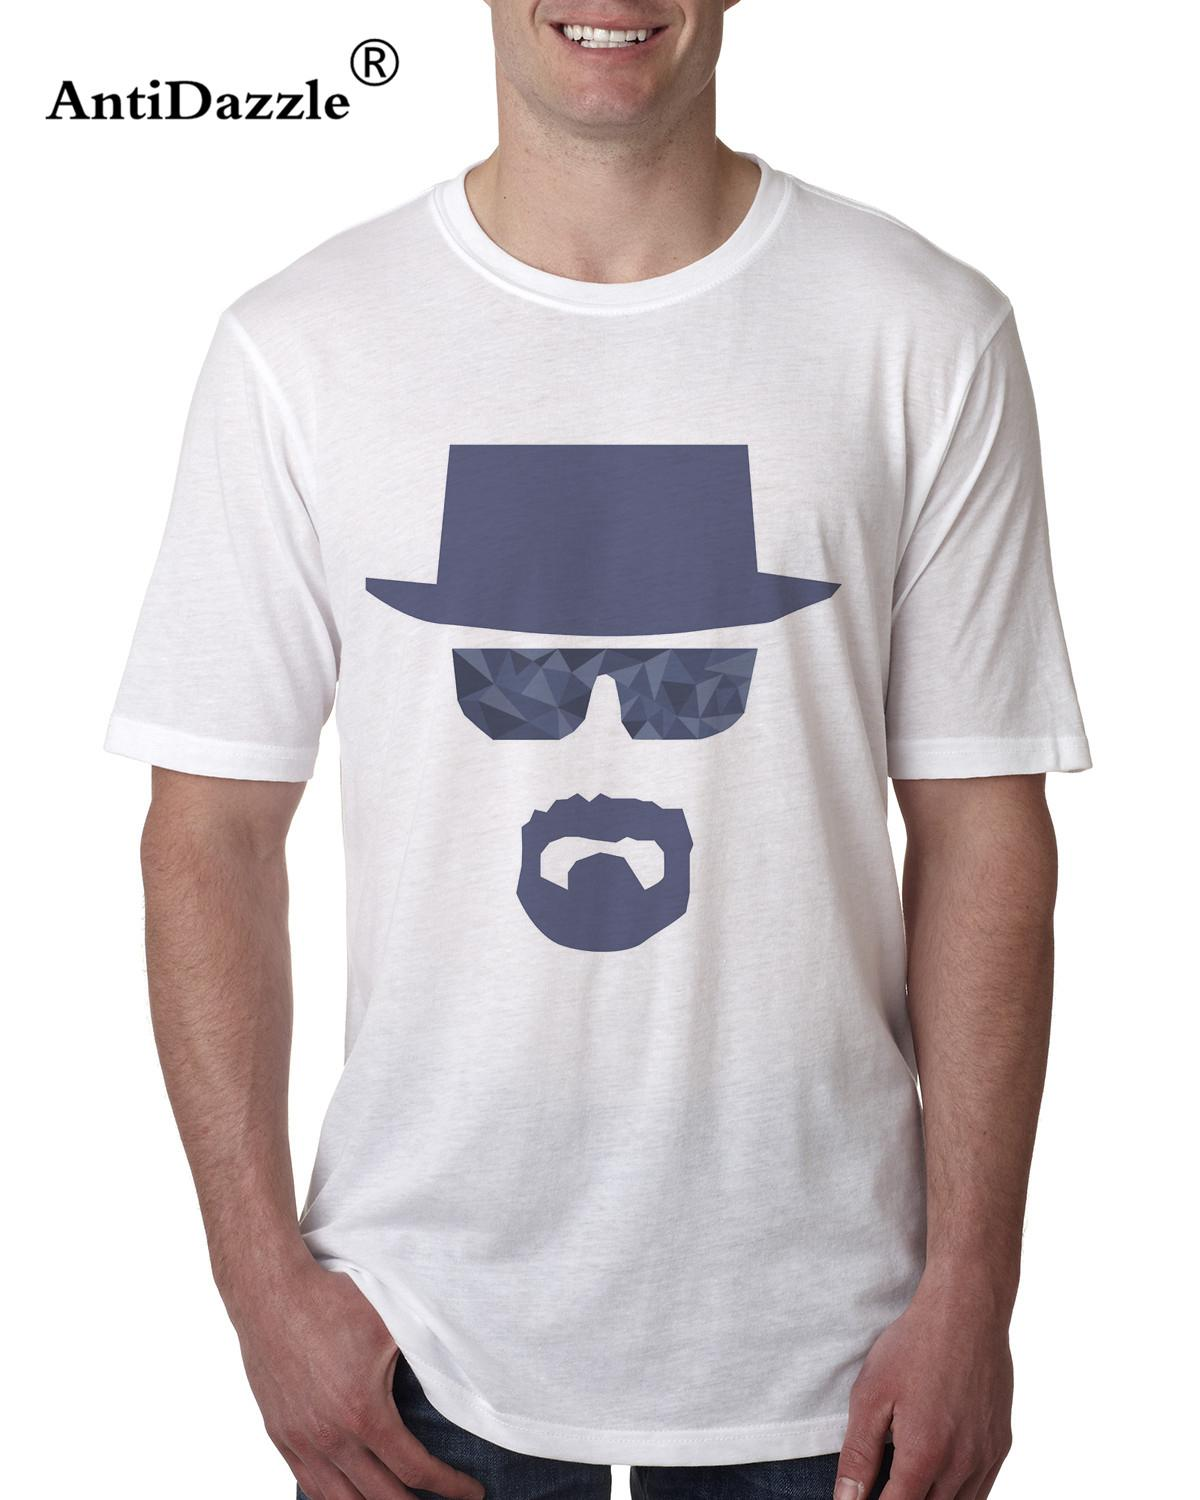 Antidazzle Breaking Bad Casual Design Men's Short Sleeve T shirt heisenberg New brand Asian Size T-shirt Tees Male O-neck